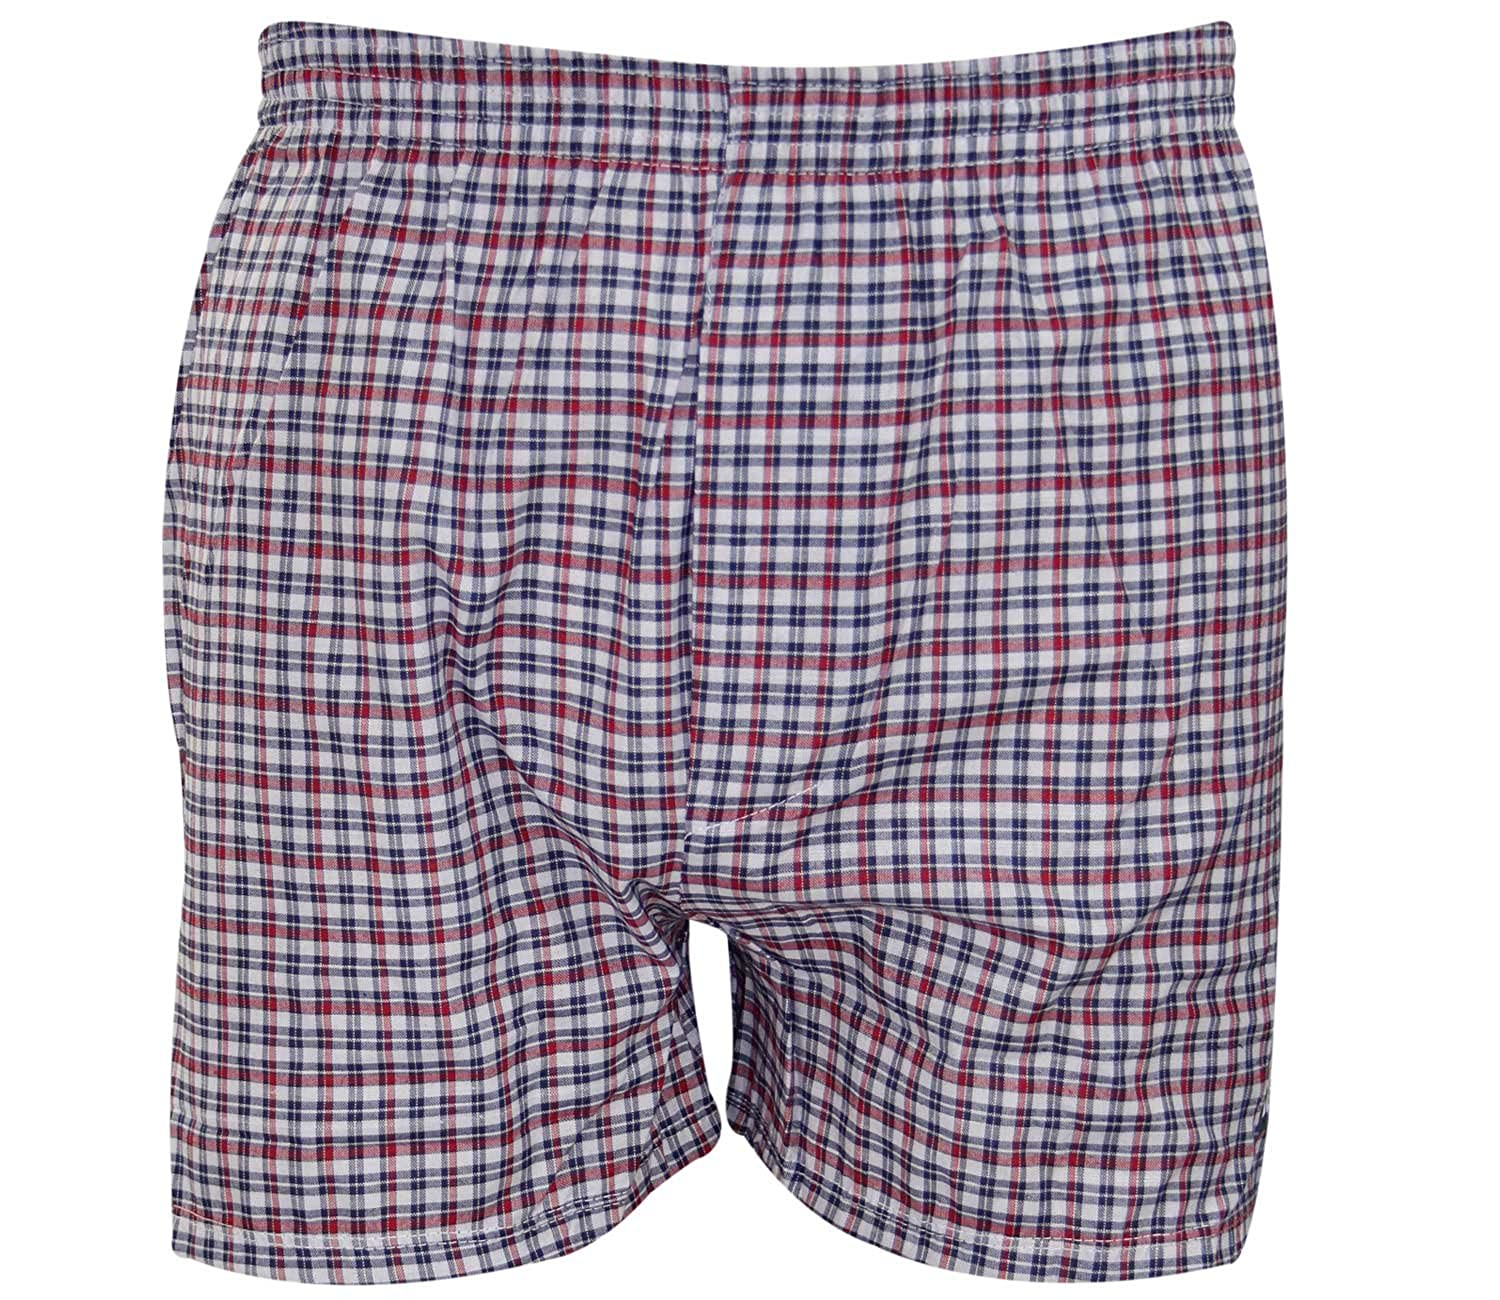 dc6726a164ad97 6 Pack Mens Woven Check Print Poly Cotton Boxer Shorts Underwear Plain  Trunks